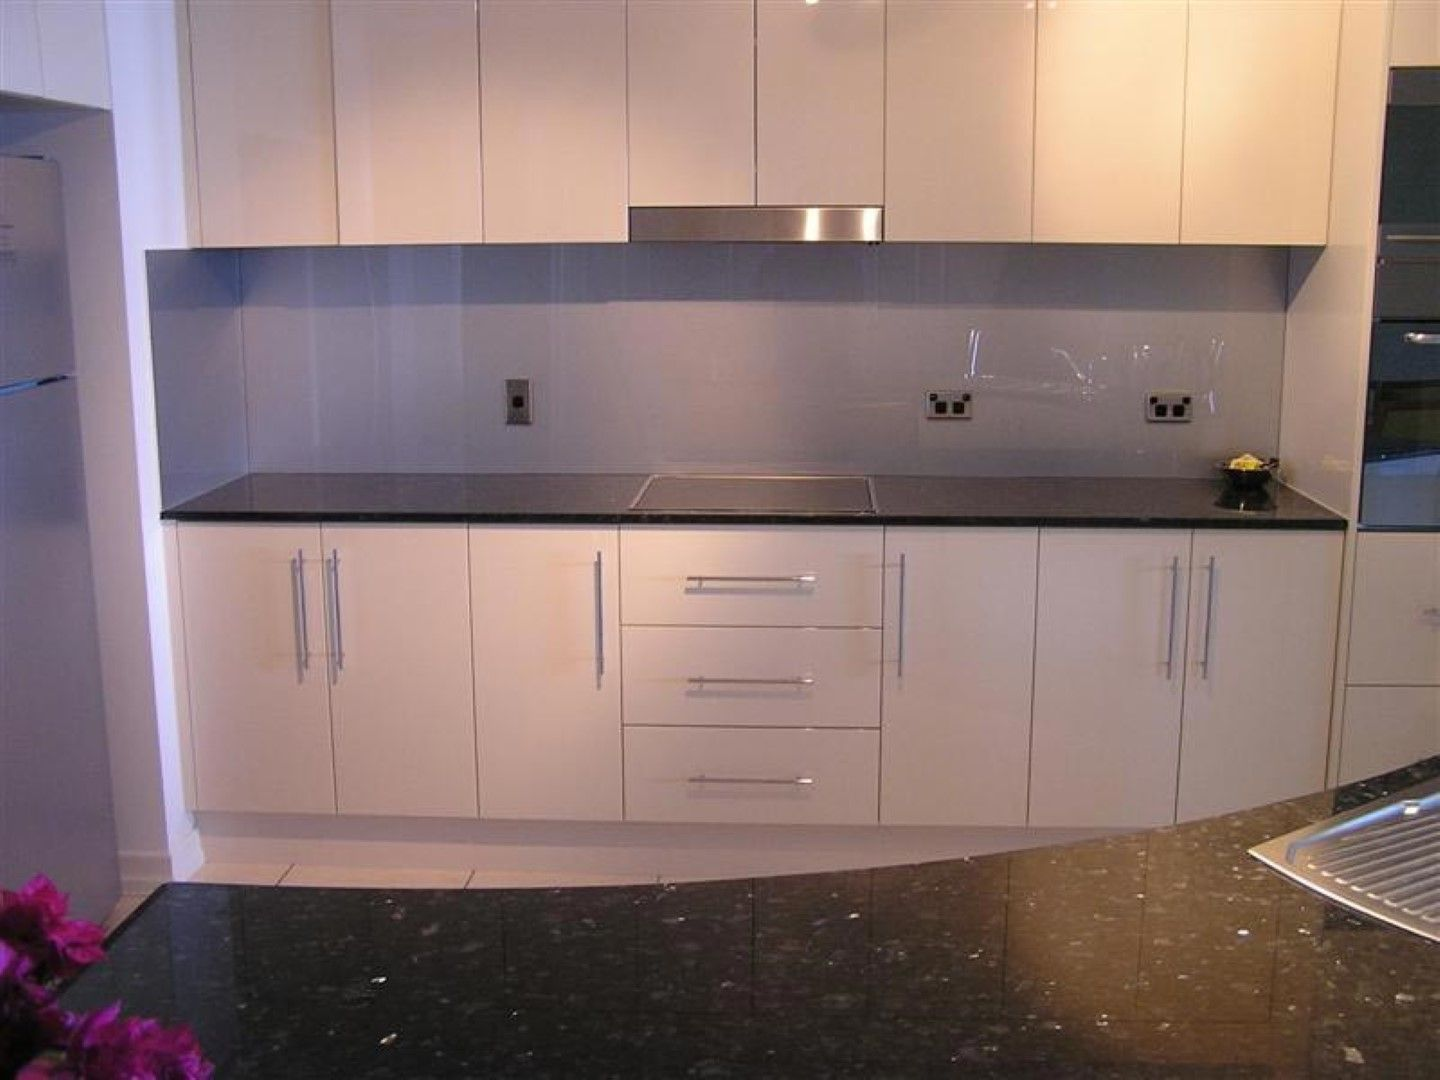 Nice Home Design, Trendy Grey Backsplash Design For Extravagant White Kitchen  With Curvy Island Table: